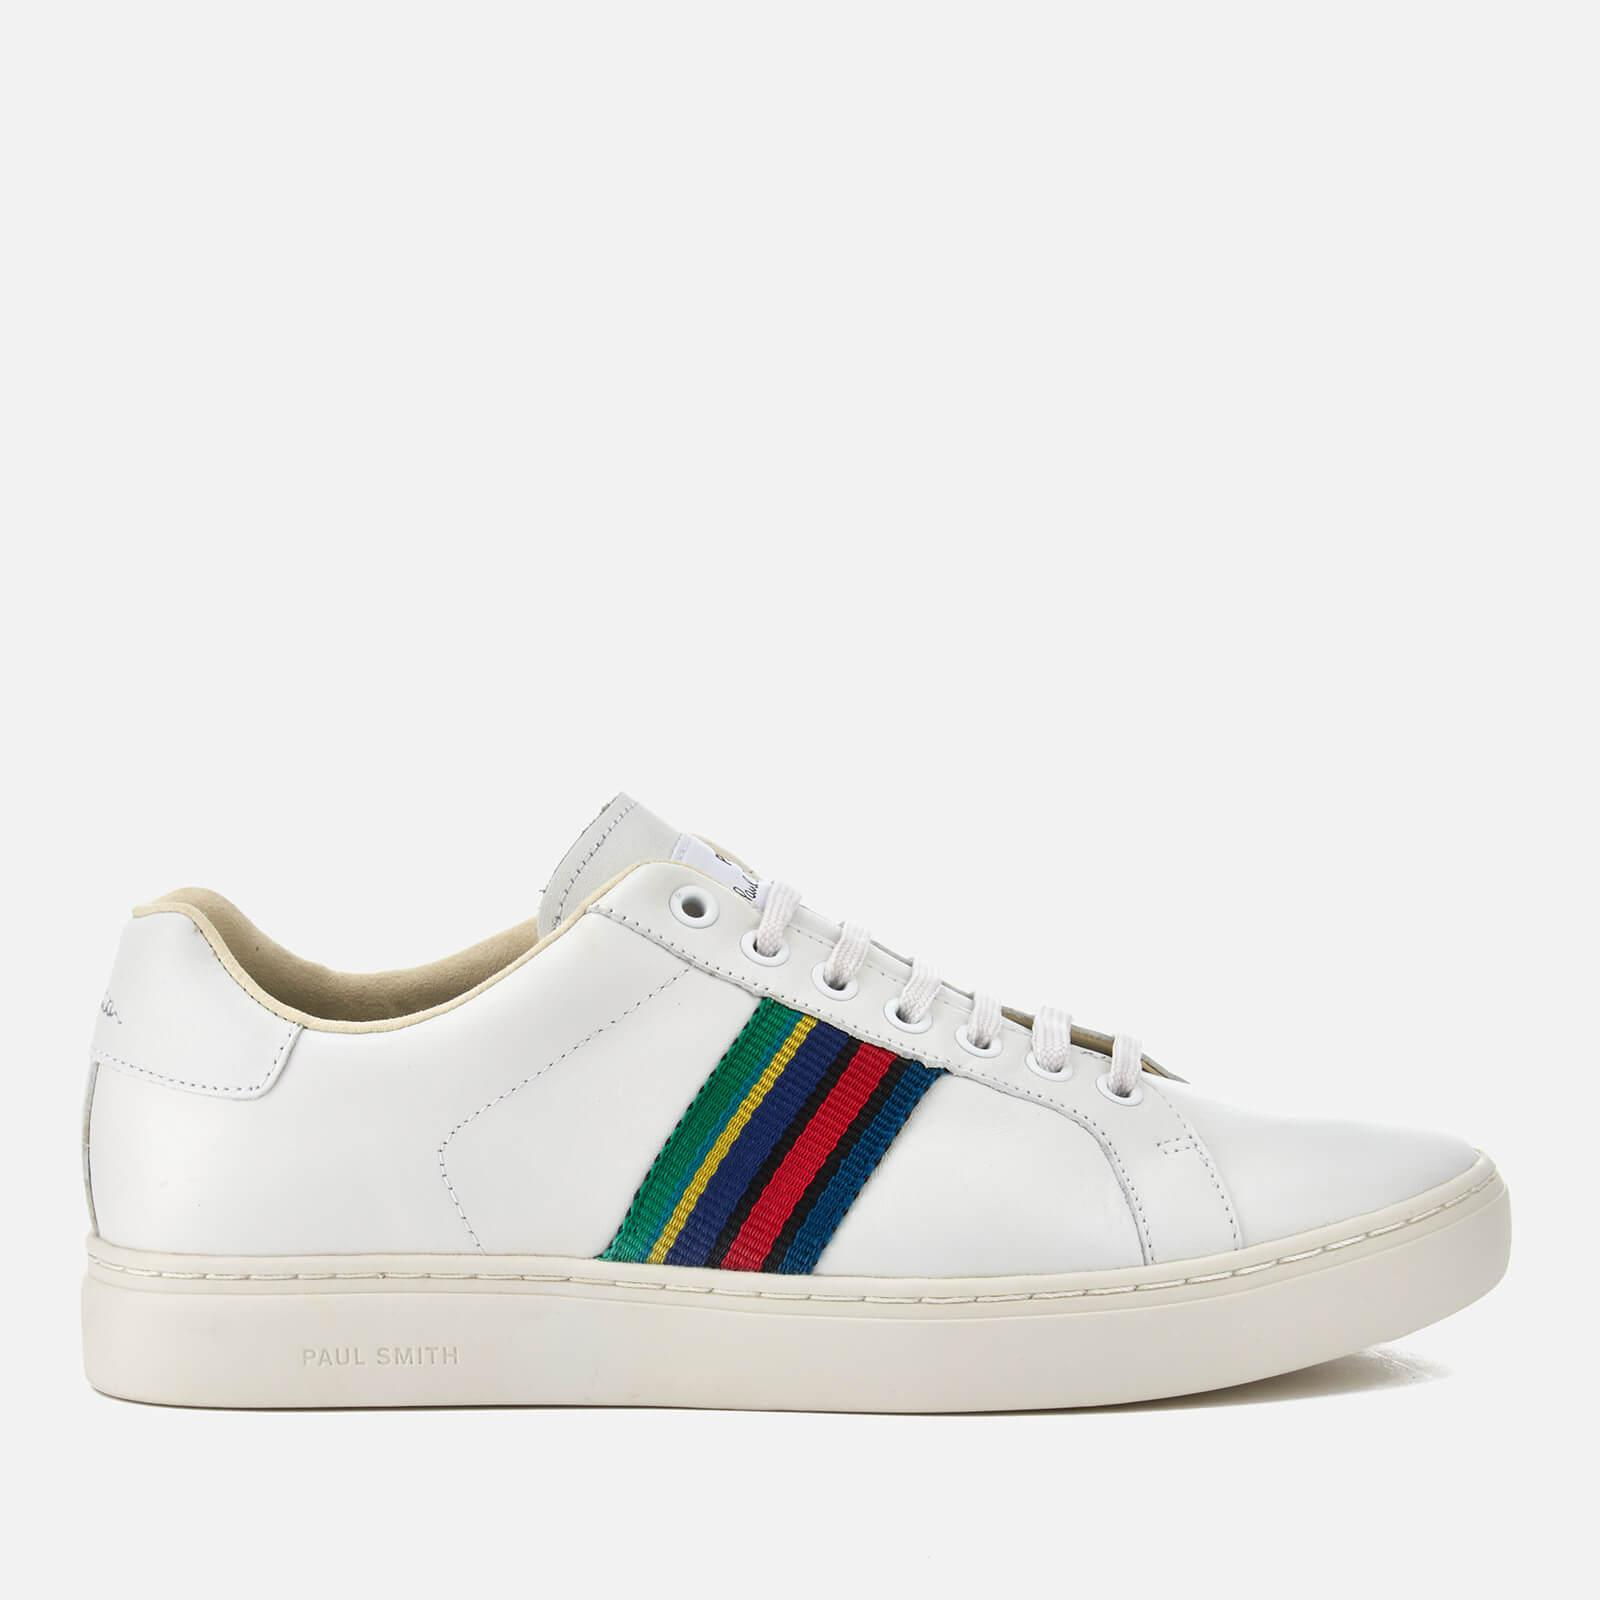 Paul Smith Women's Lapin Suede Striped Trainers - - UK 6 klrls1